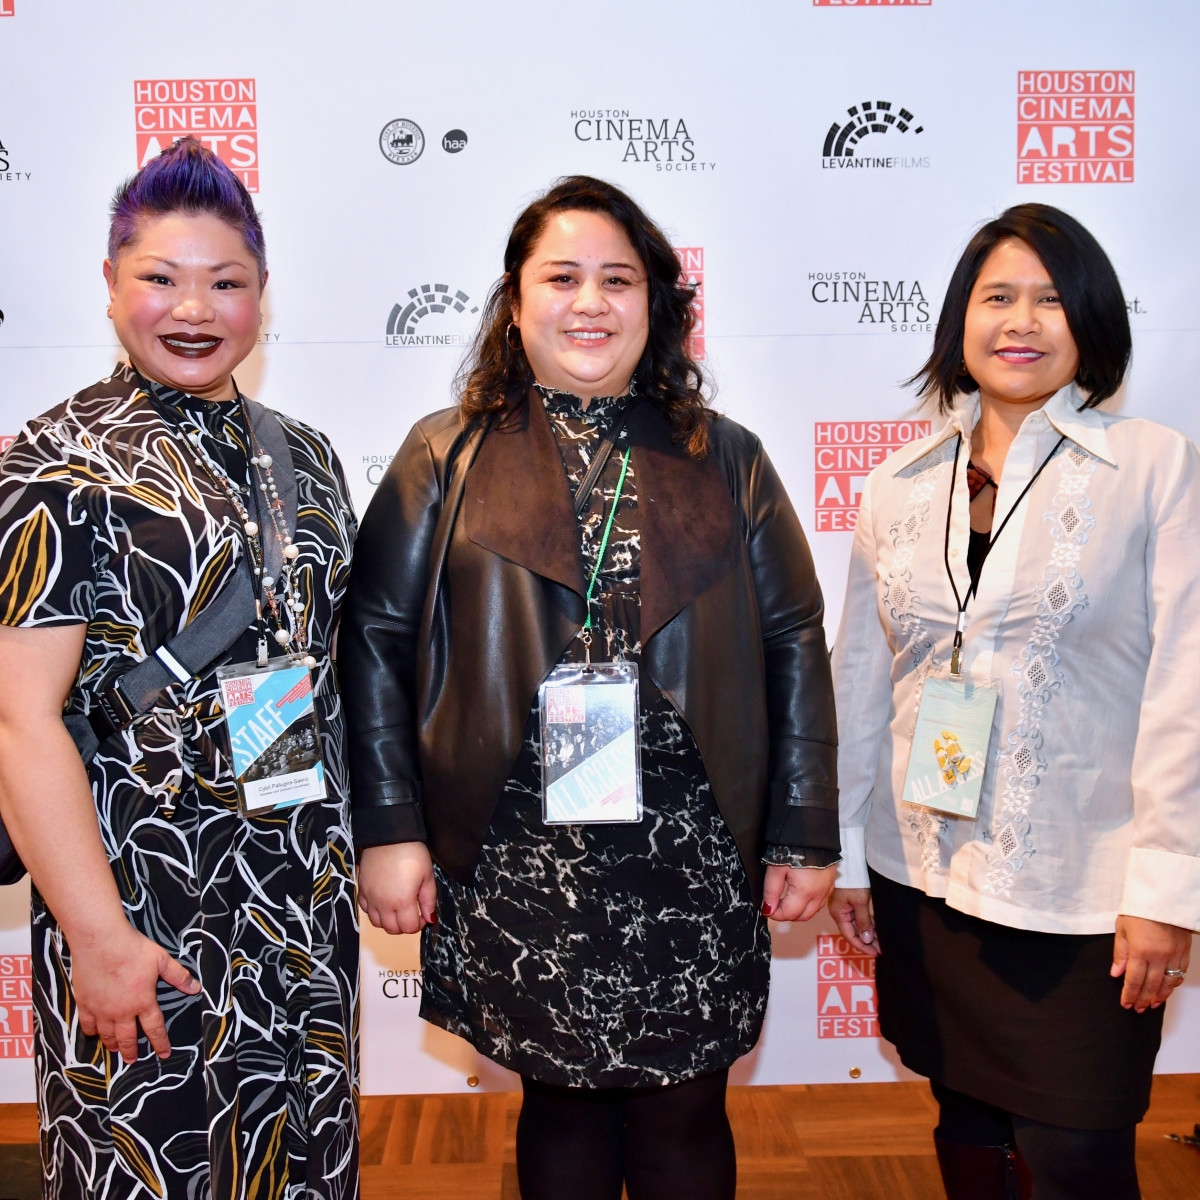 HCAF 2019 Opening Night:Cybil Saenz, Cecilia Mejia, Christy Poisot